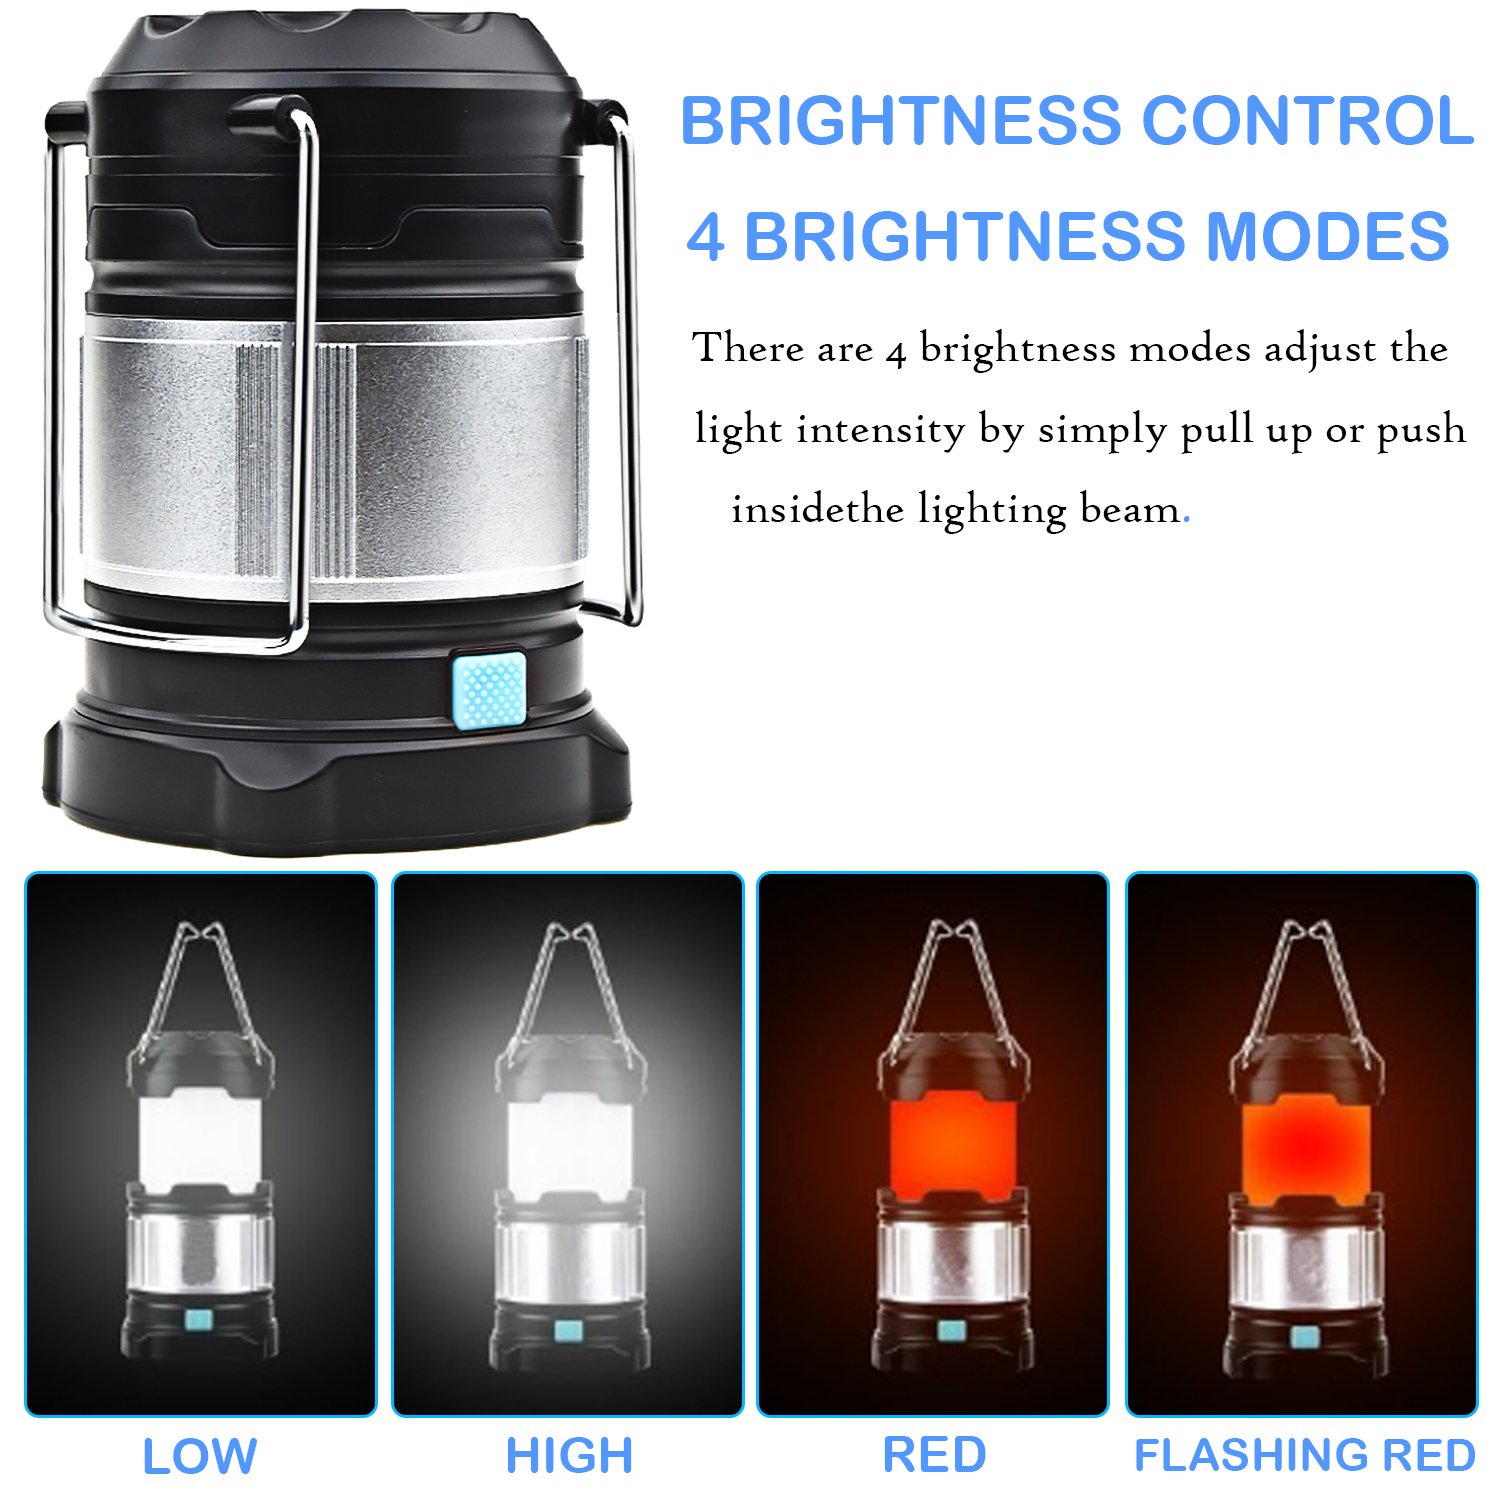 Alcoon 2 Packs Rechargeable LED Camping Lantern Light Lamp with 5600mAh Power Bank, Portable Collapsible Waterproof Outdoor Light with 18650 Li-ion Batteries for Camping Traveling Tent, Emergency by Alcoon (Image #5)